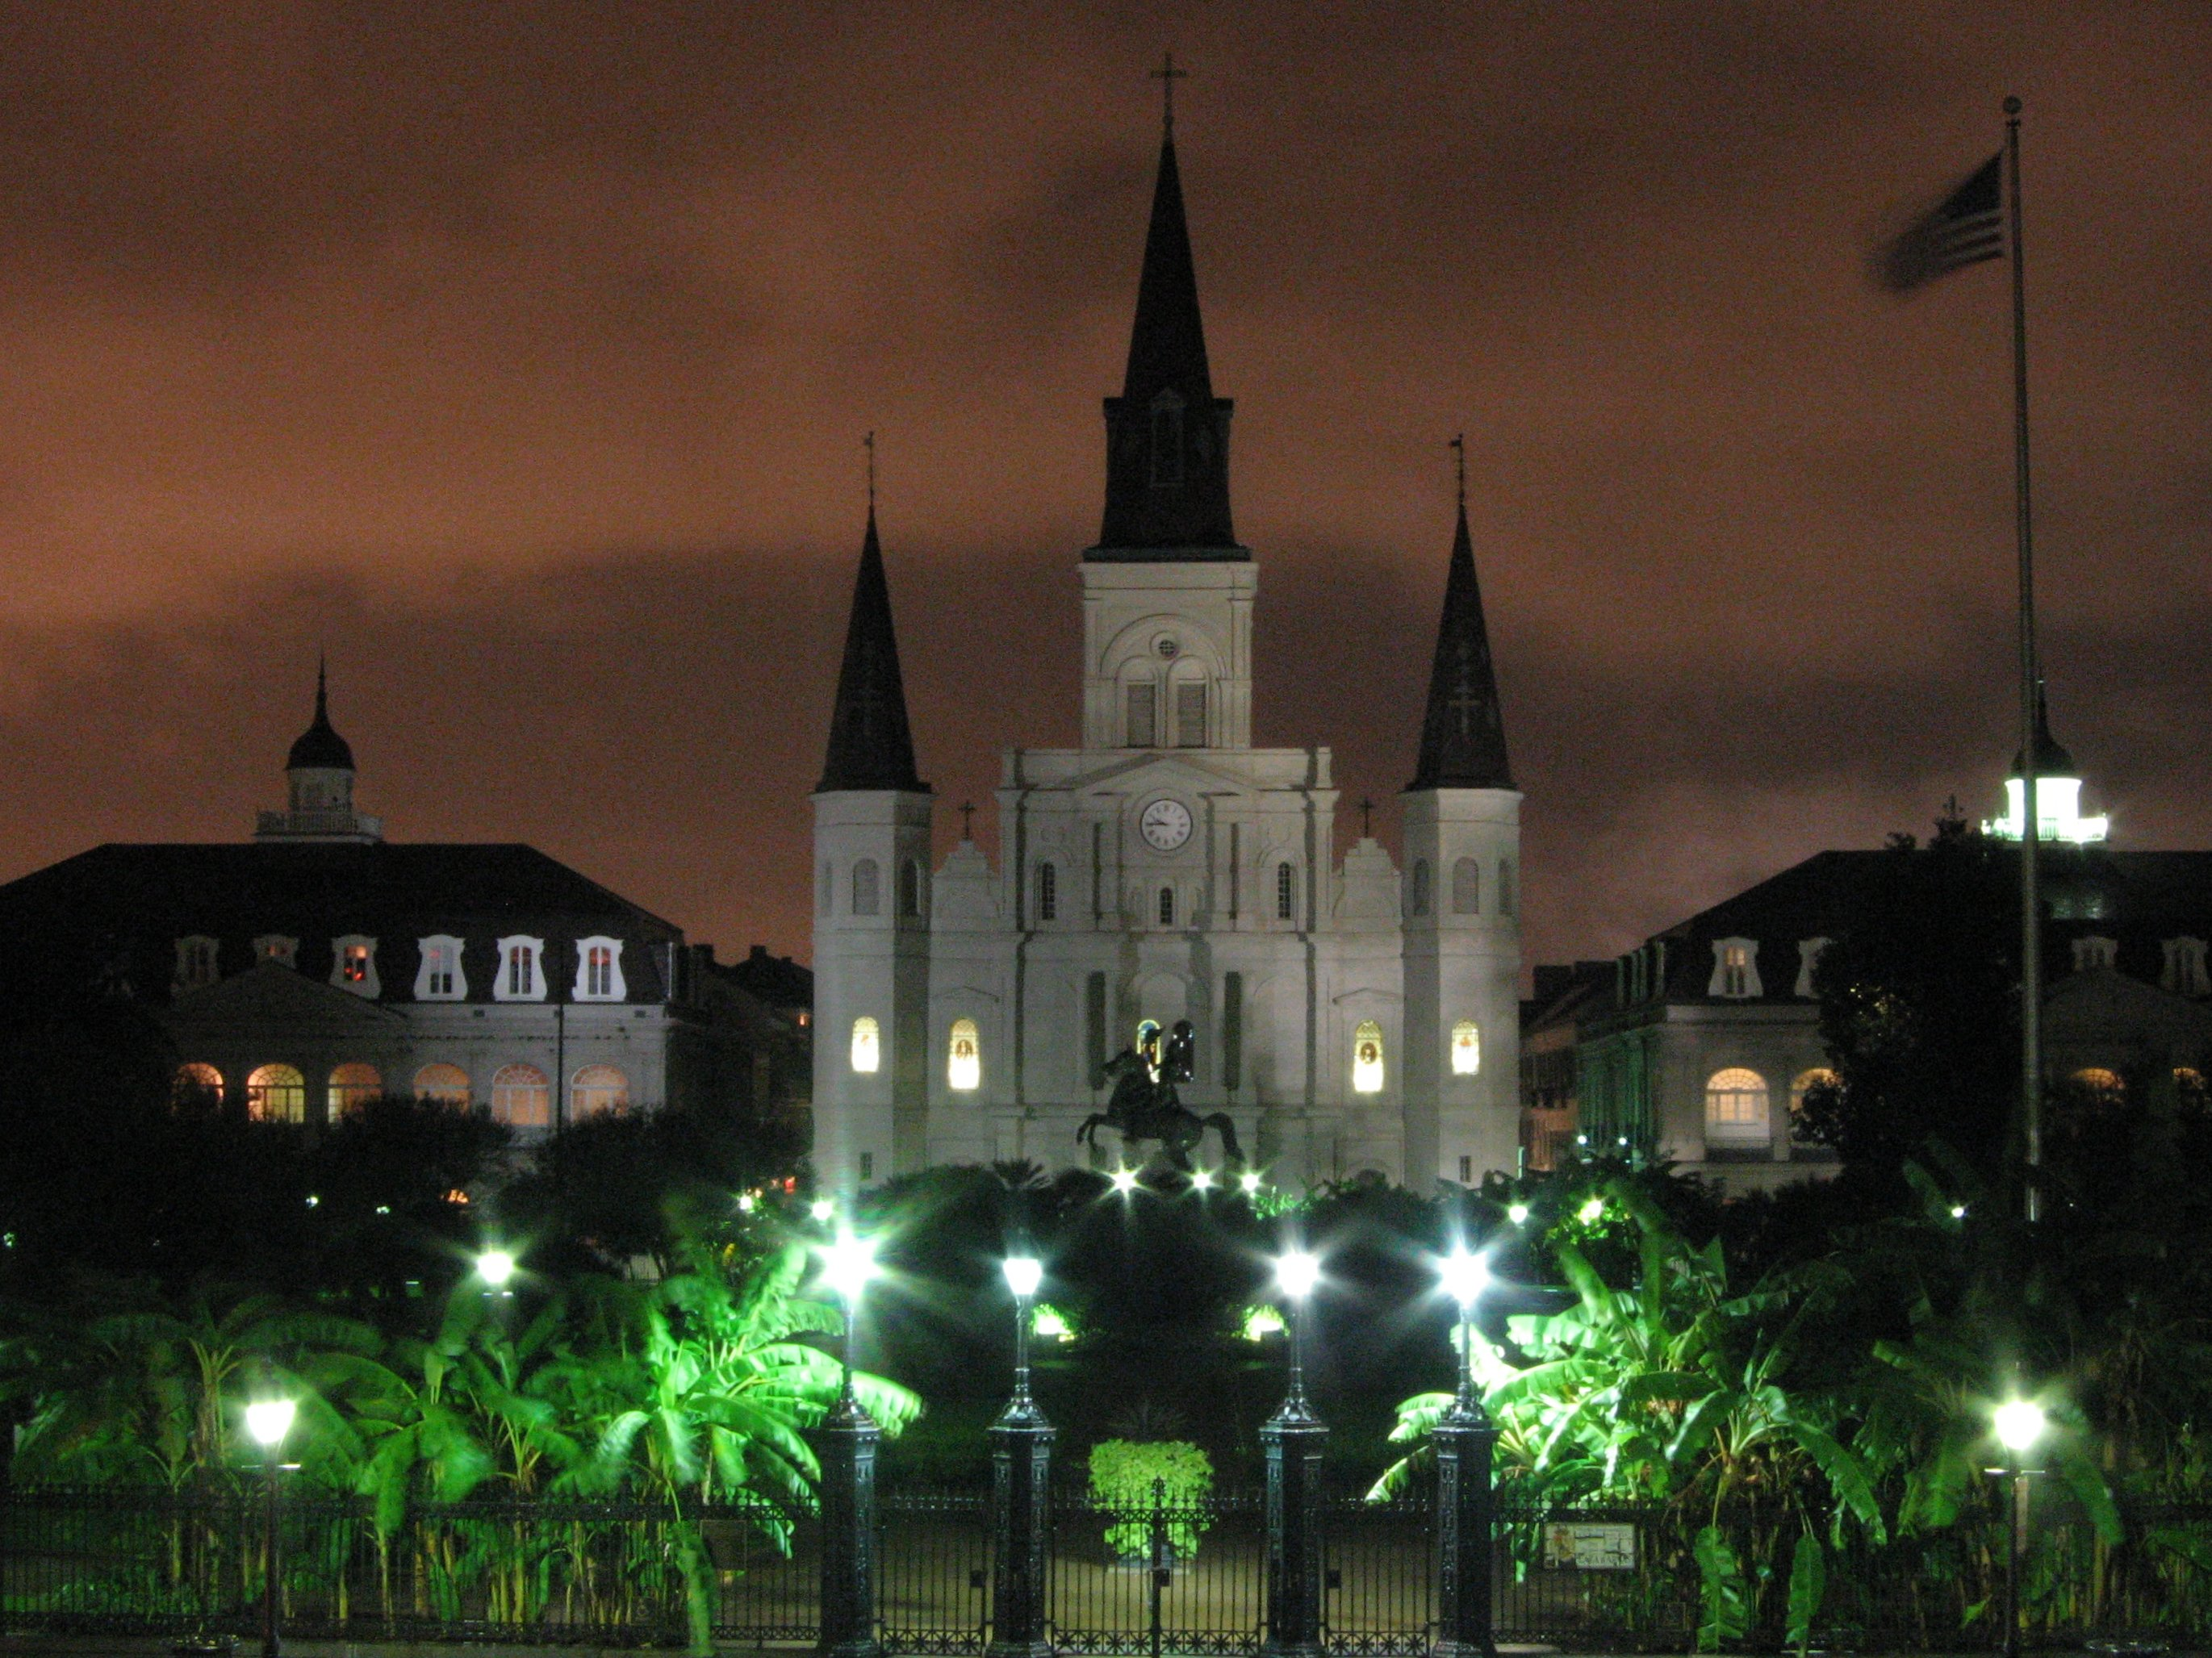 Mercy Smart Square Com >> Check out the historical Jackson Square in New Orleans ...